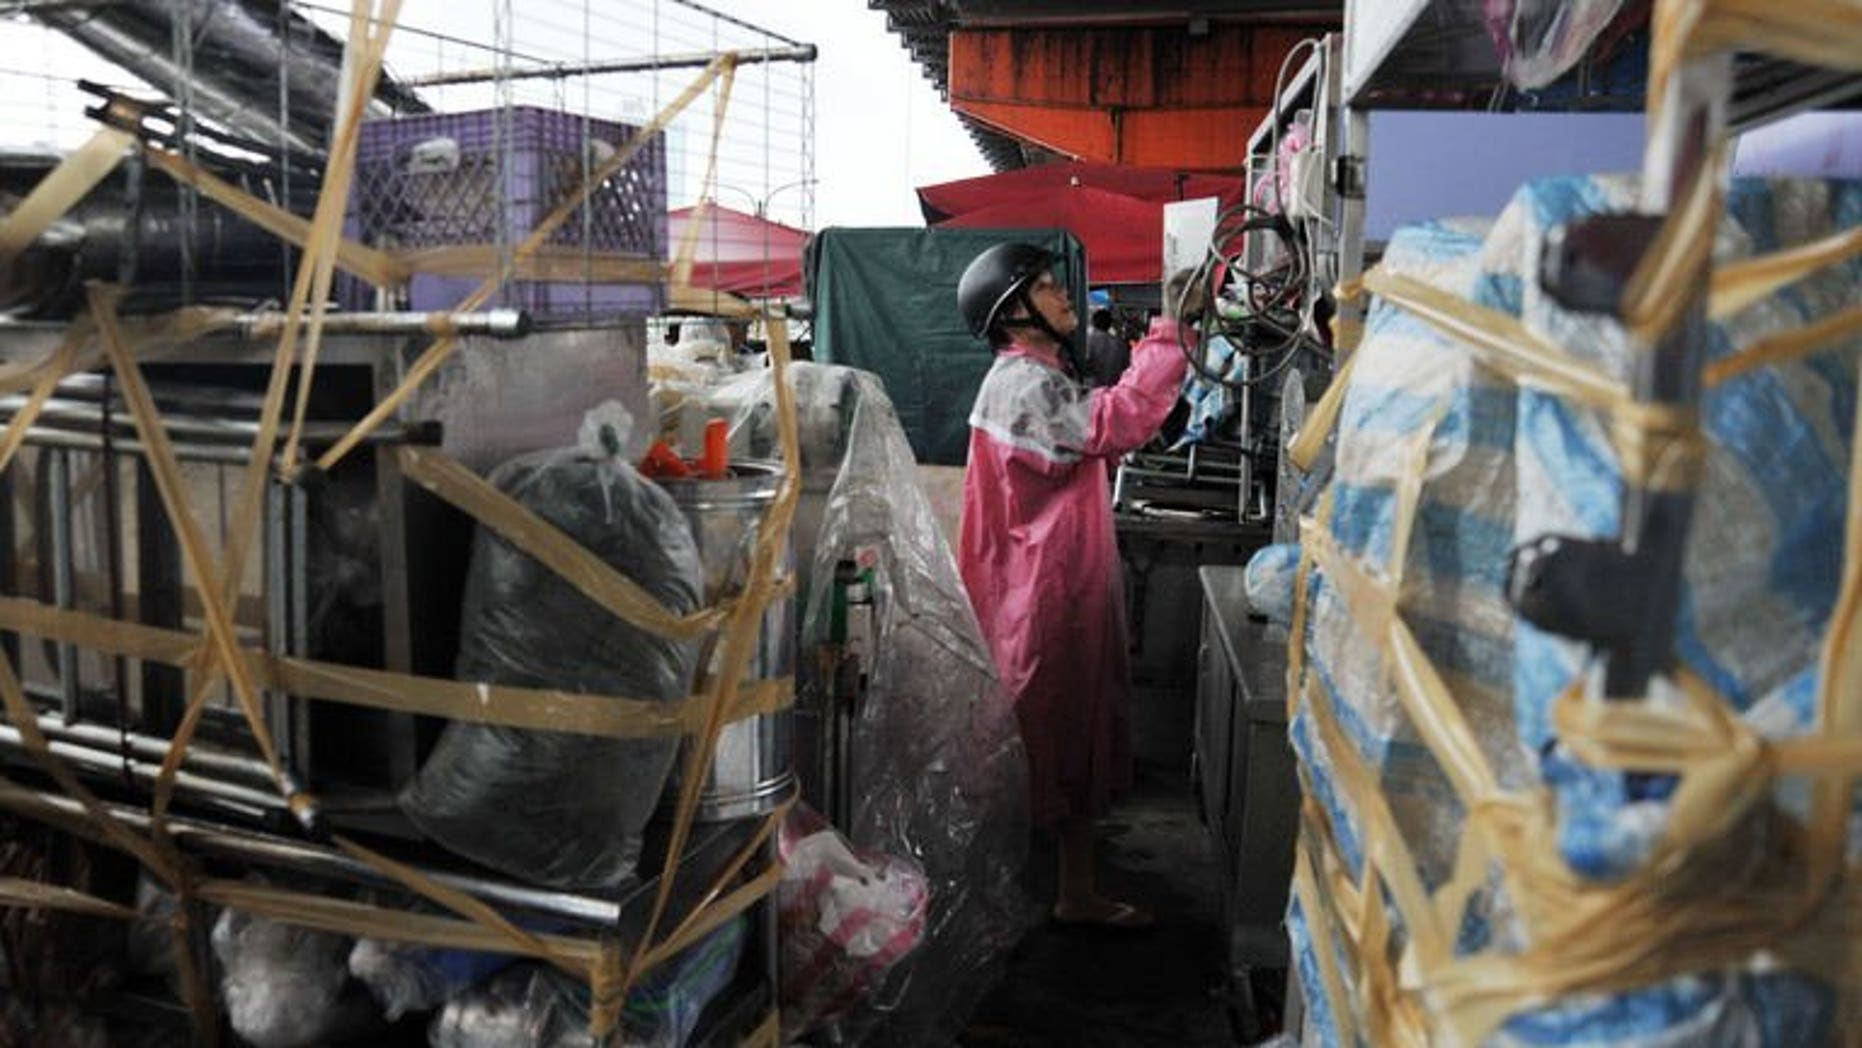 Residents pack up their food stands in preparation for Tropical Storm Trami in Taipei on August 20, 2013. Taiwan evacuated more than 1,000 tourists from an island and deployed troops on August 20 in preparation for the possible arrival of Tropical Storm Trami.